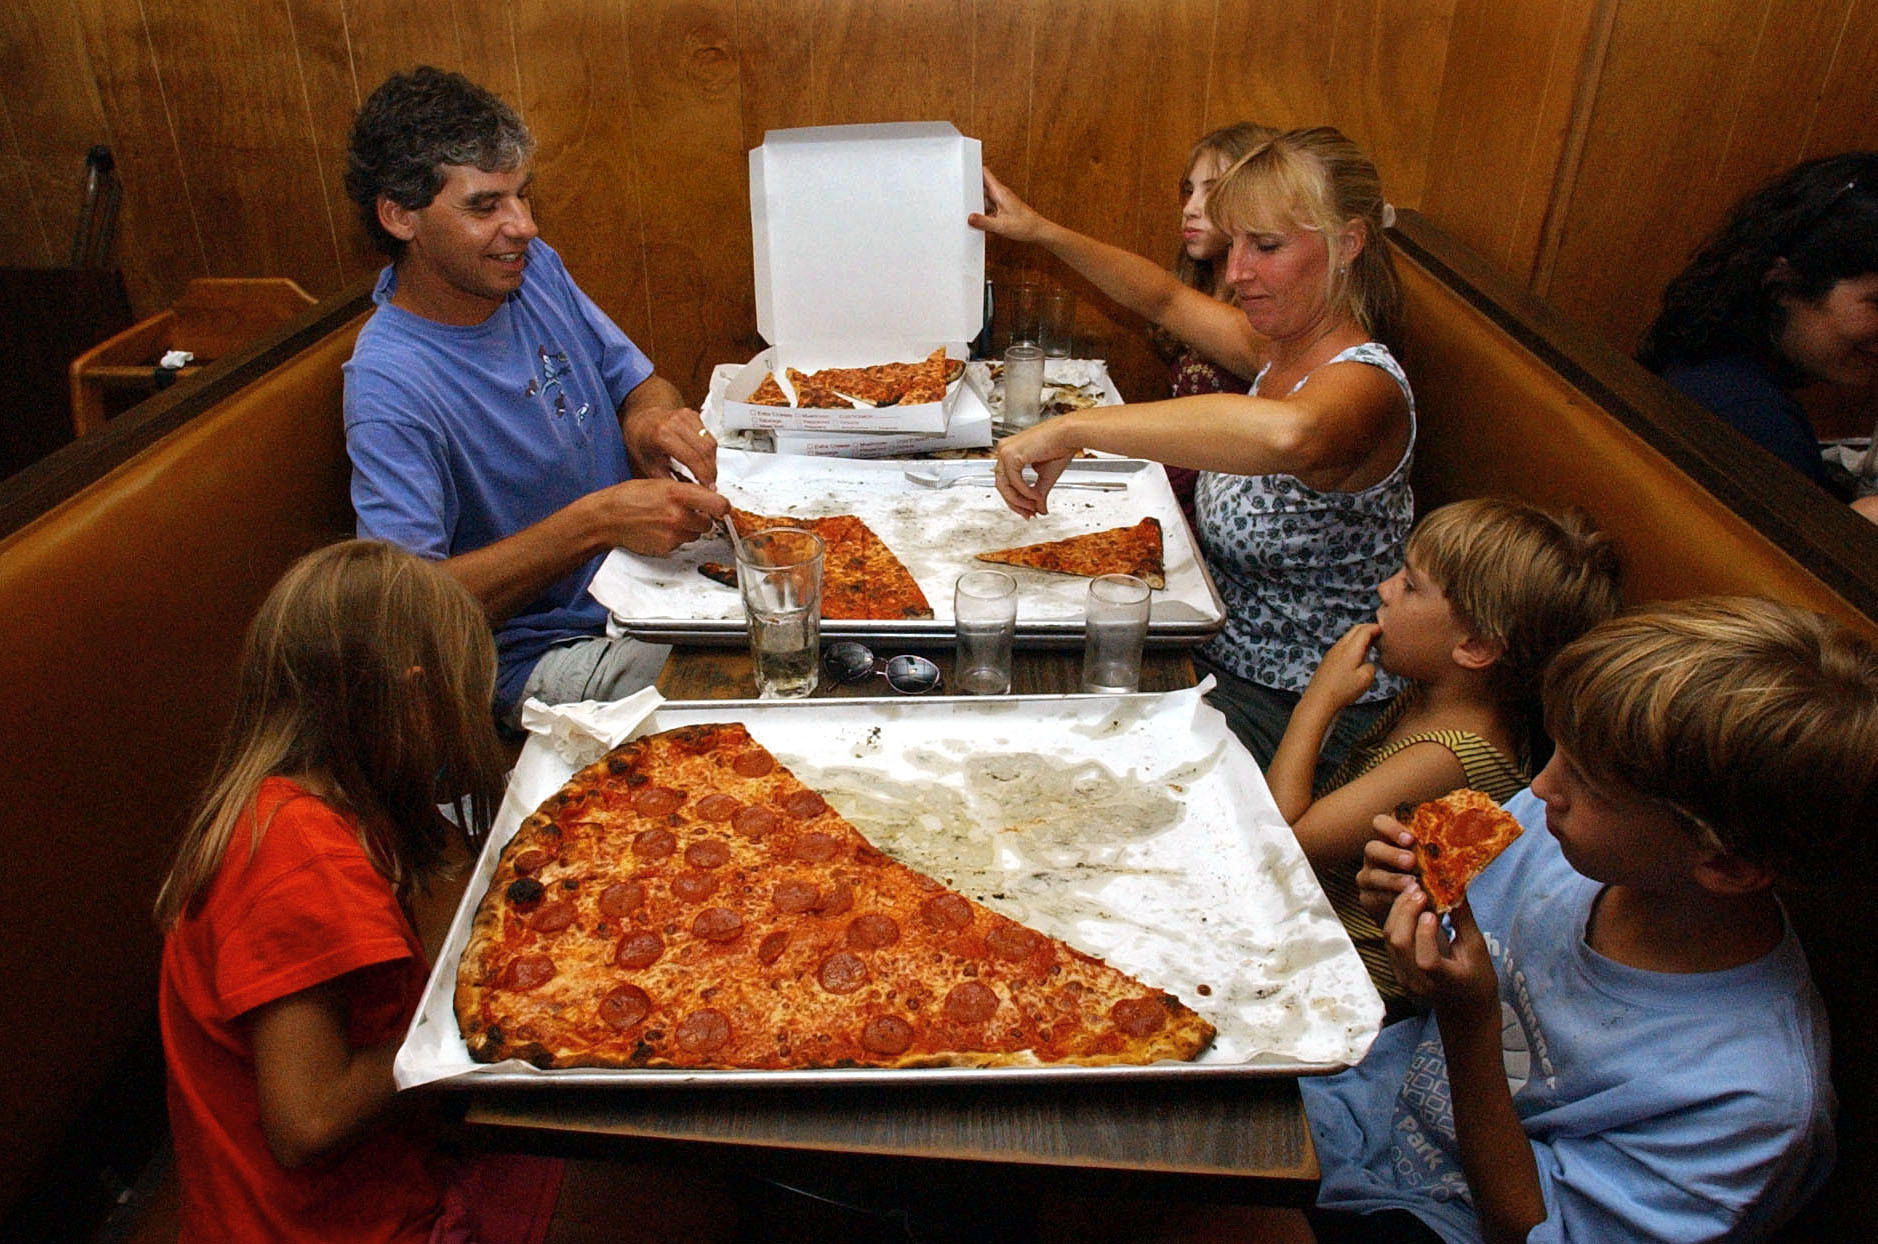 There is no other pizza for the Jasensky family, who routinely drive the two-and-and-a half hour round trip from their home in Bethlehem for Sally's Apizza on Wooster Street in New Haven. Established in 1938 just up the street from Pepe's by Sal Consiglio, a nephew of Frank Pepe, the rivalry between Pepe's and Sally's has helped create the legend of New Haven pizza. Sally's has it's own legion of faithful customers, like the Jasenskys who swear that Sally's is the best pizza in the state. (Aug. 21, 2003)